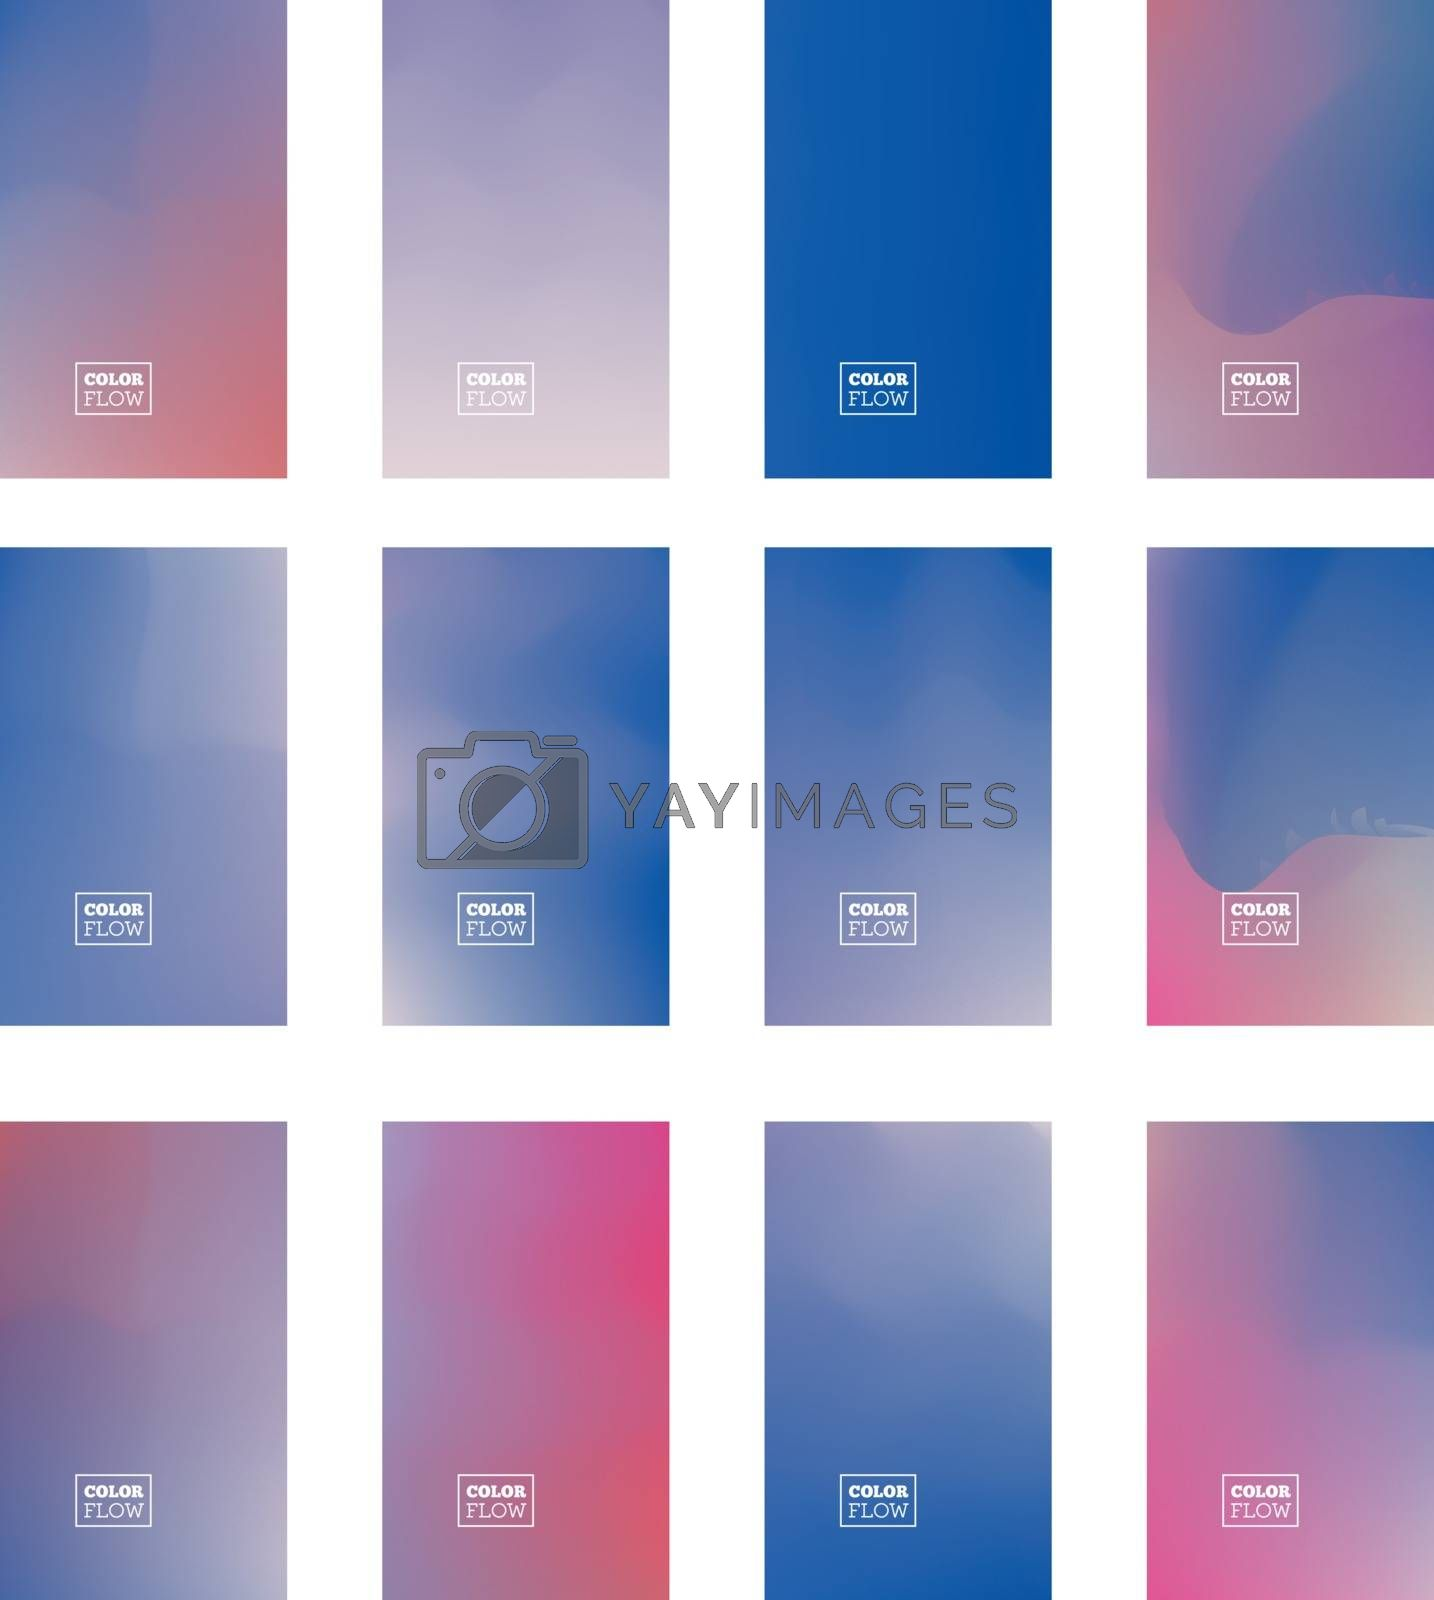 Gradient Mesh vector background can be used as a screen saver on a computer screen, smartphone